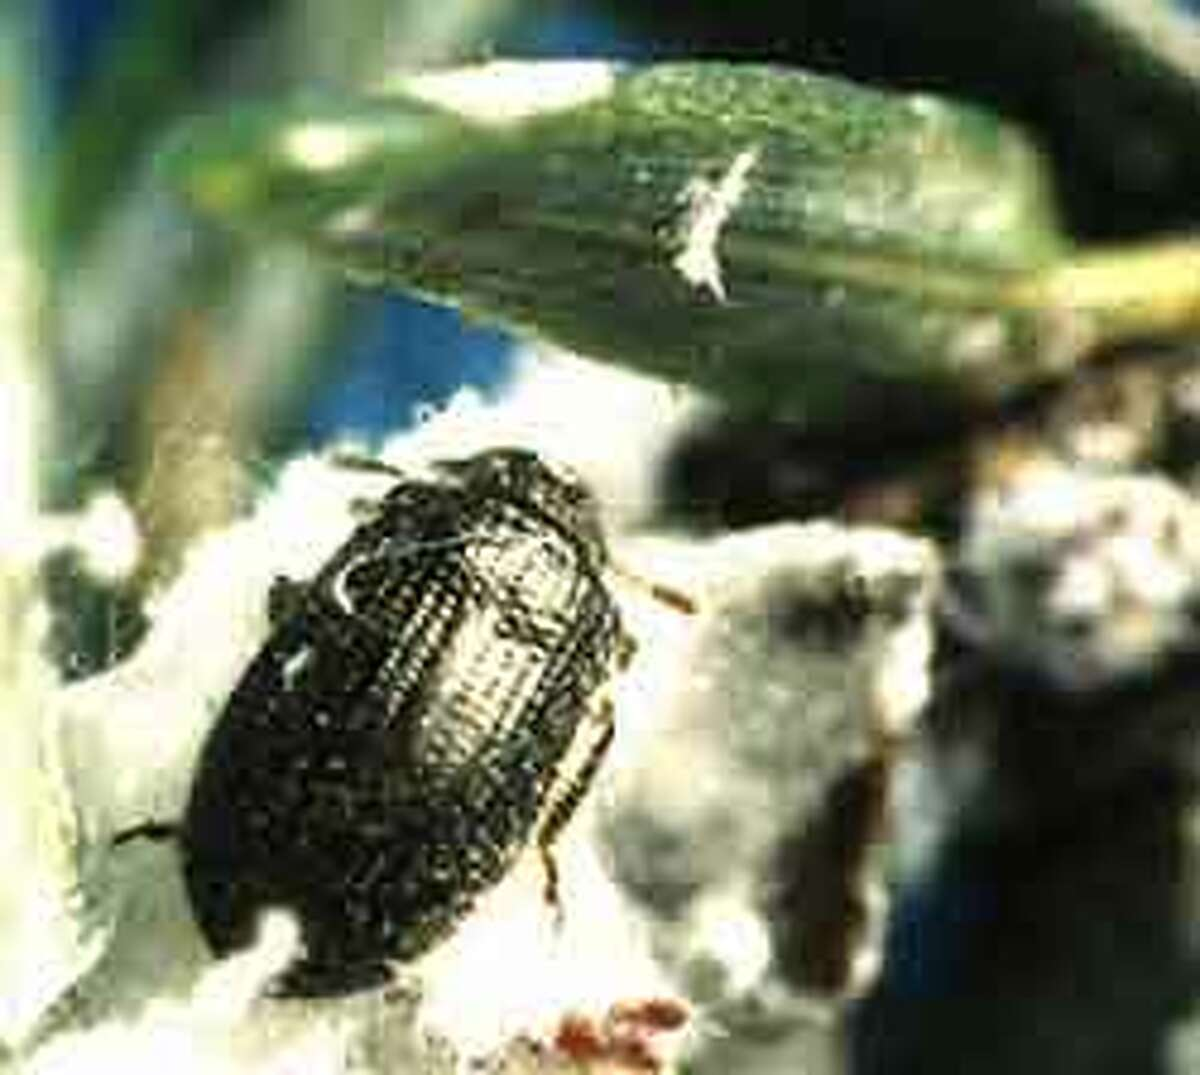 In a bid to protect the state's hemlock trees from a voracious invasive pest, researchers will be nurturing and releasing a predatory beetle, Laricobius Nigrinus.